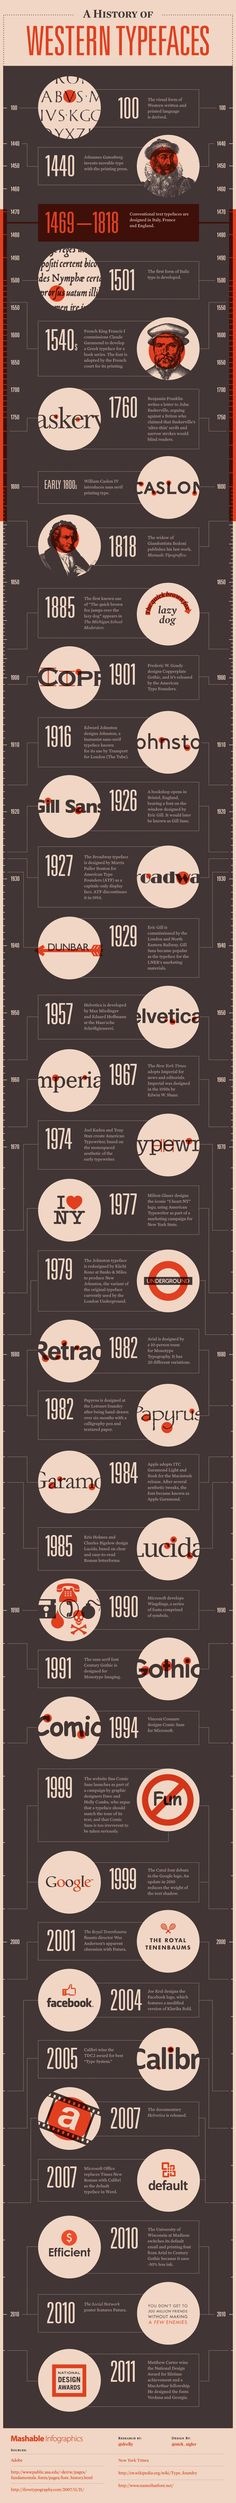 a history of some well-known western typefaces